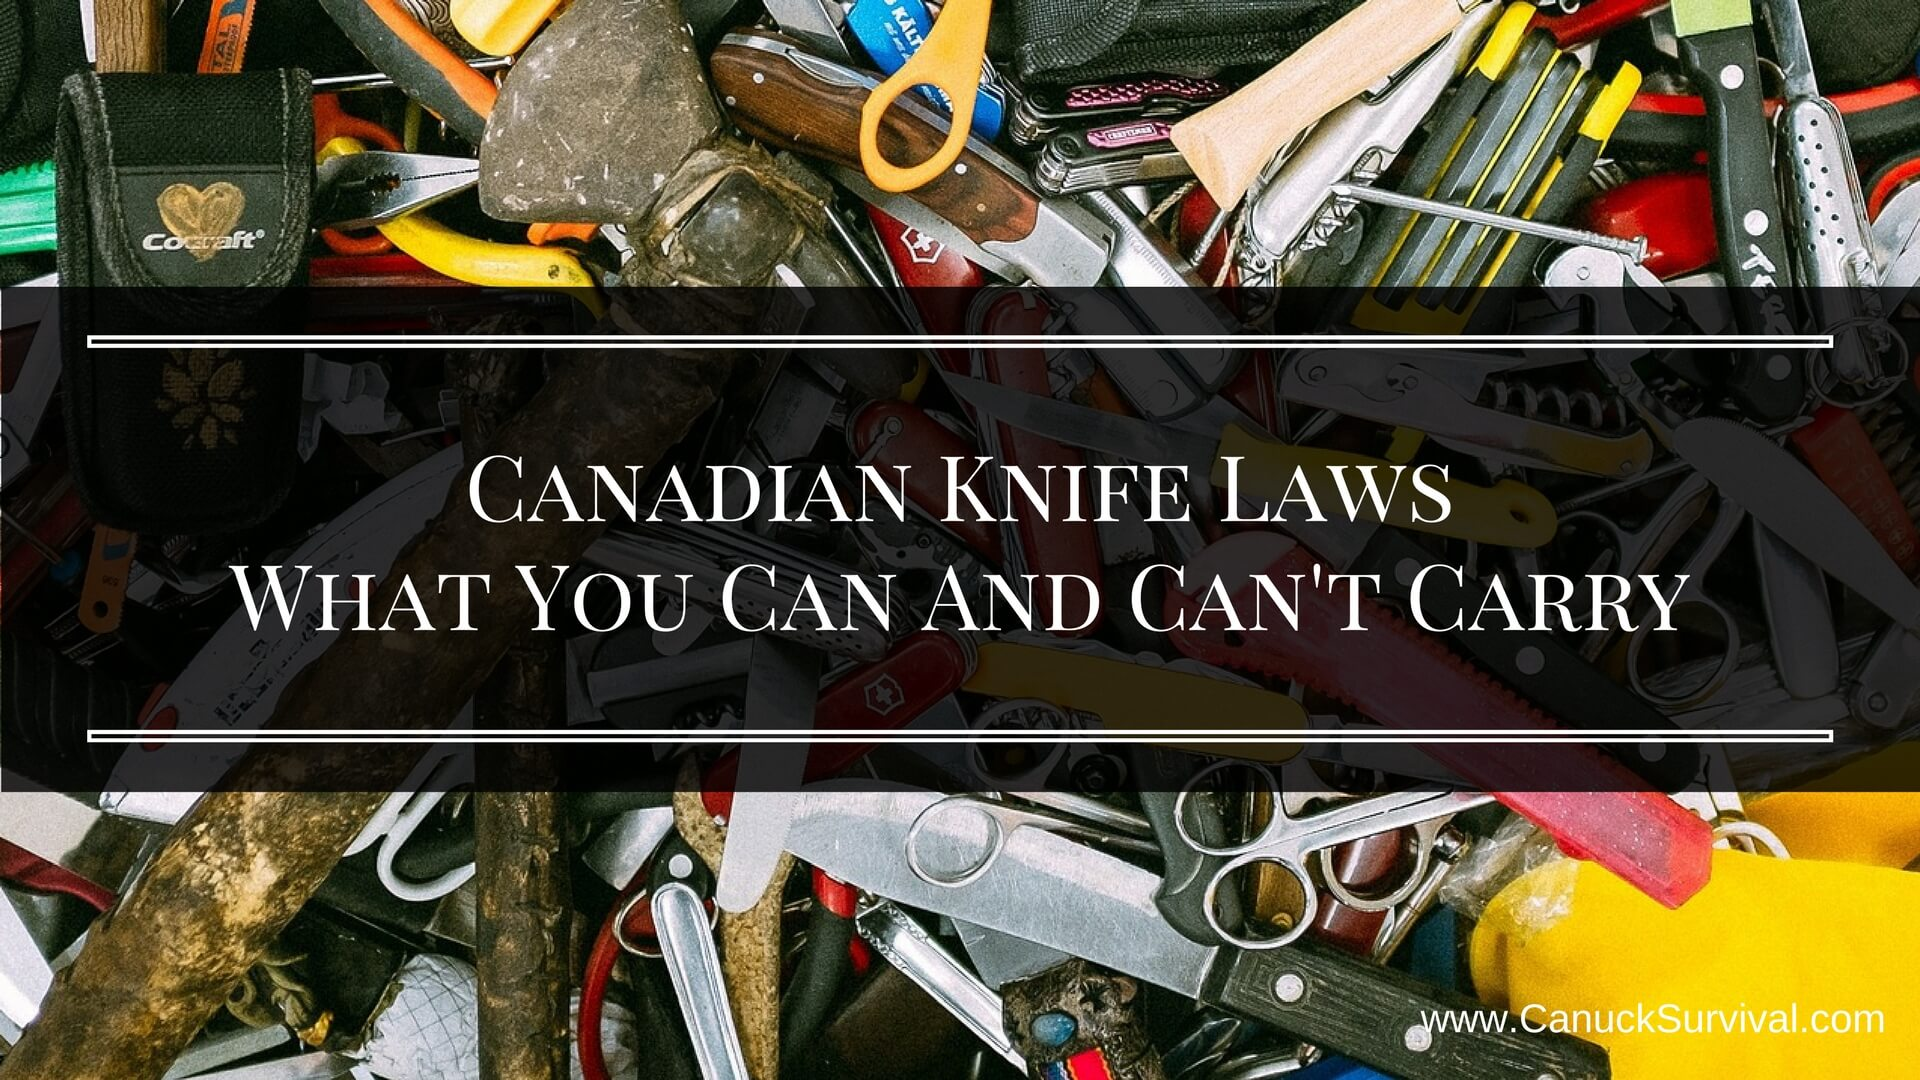 Canadian Knife Laws – What You Can And Can't Carry